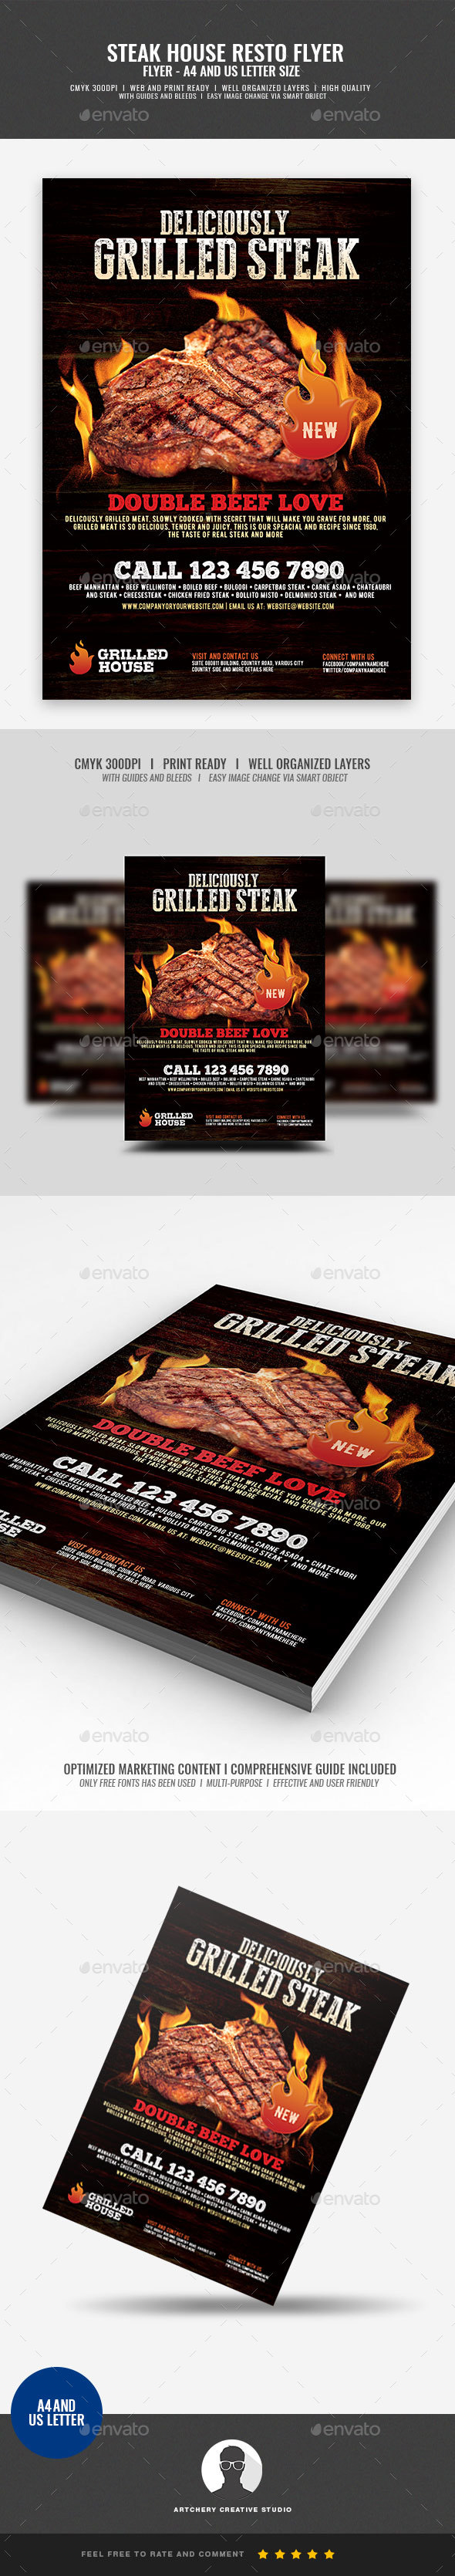 Steakhouse New Product Promotion - Restaurant Flyers